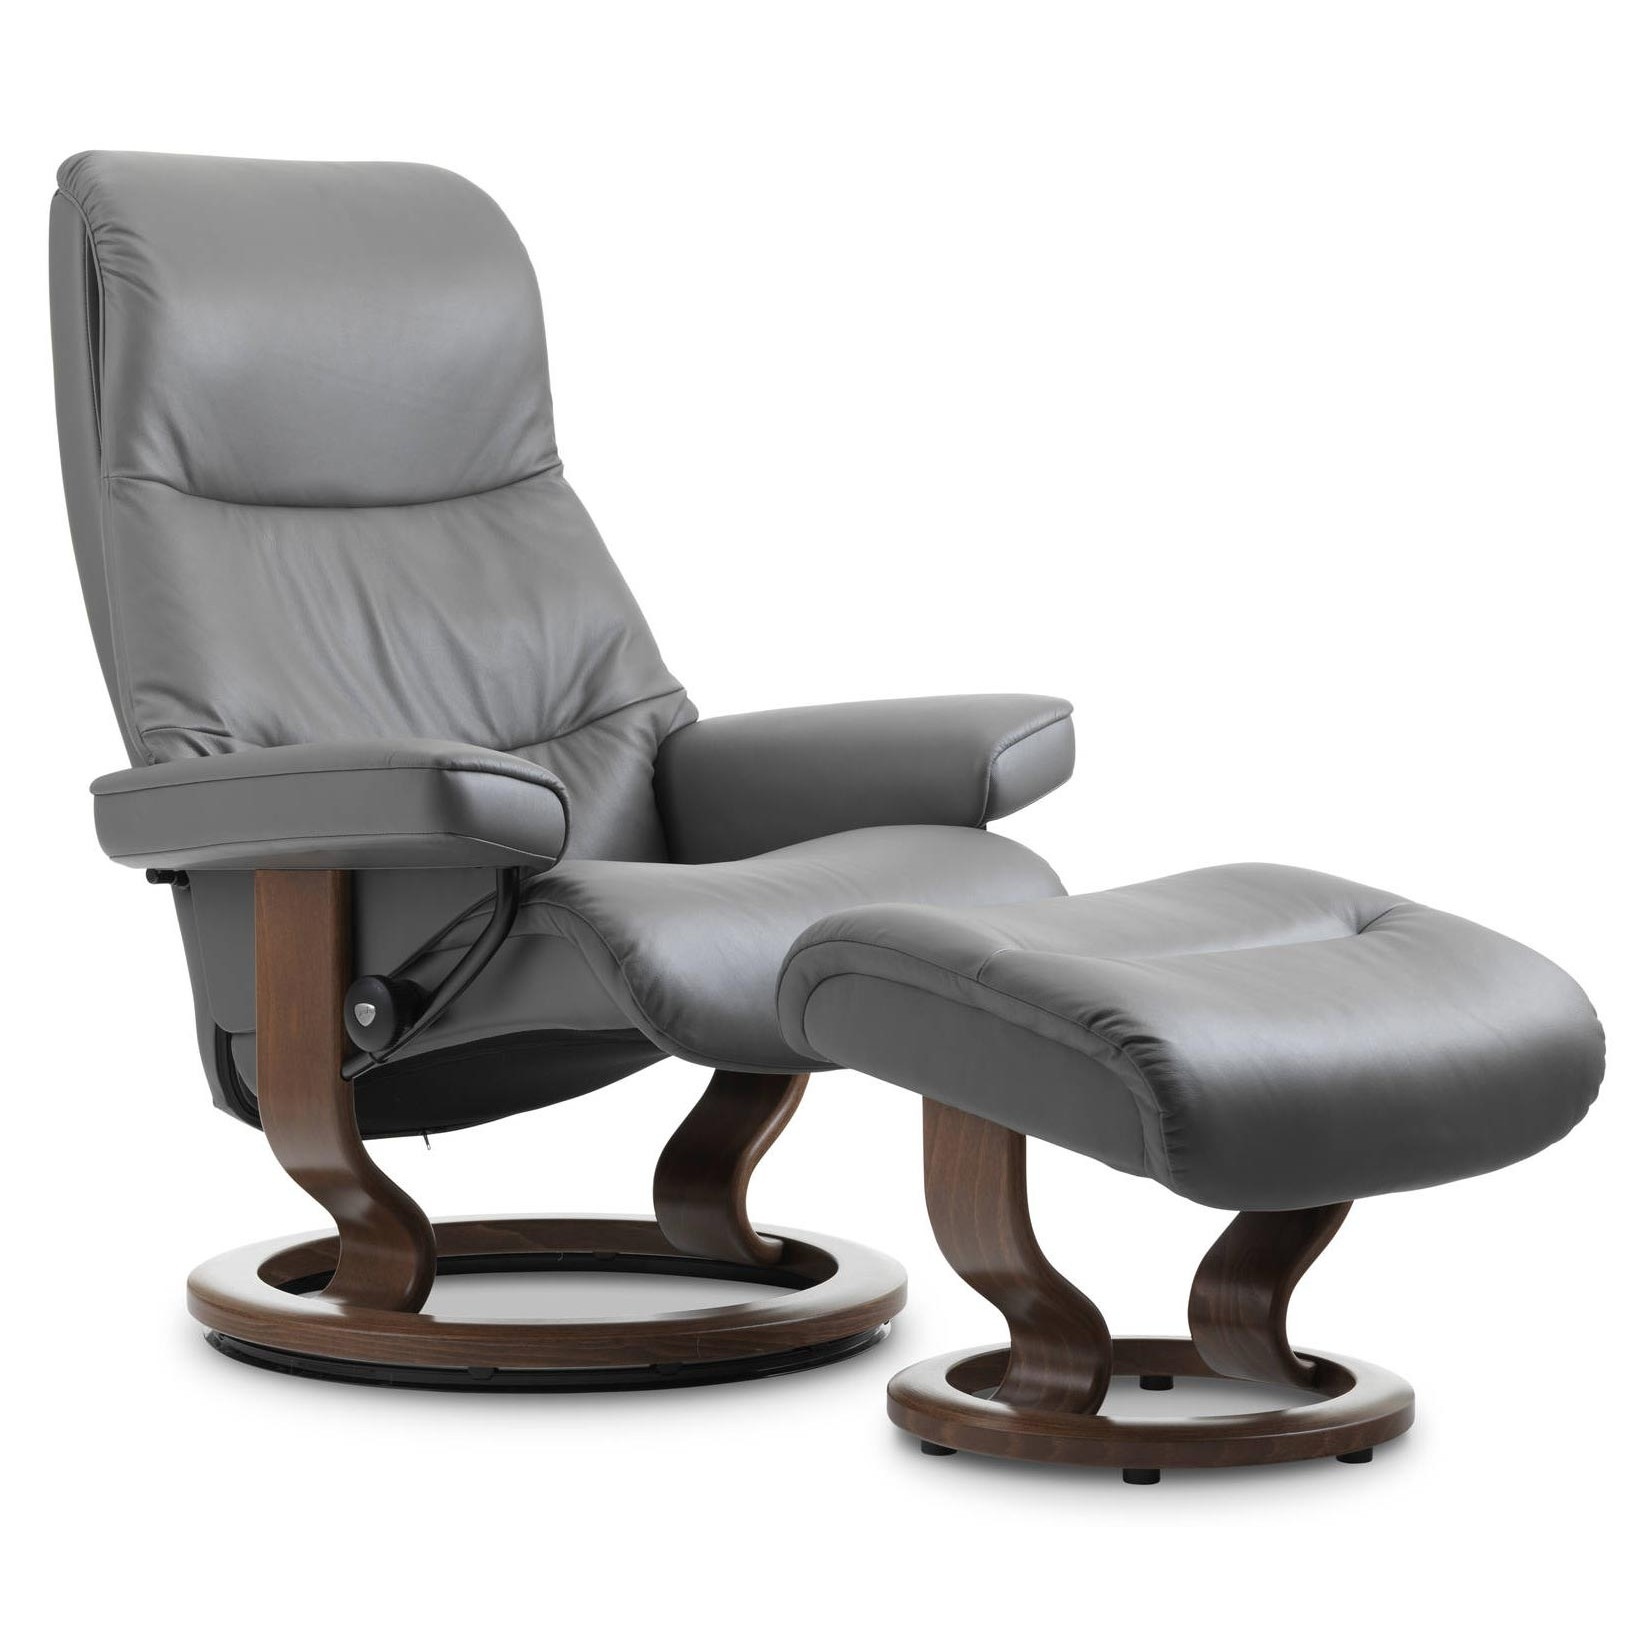 Stressless View Classic Recliner & Ottoman from $3 195 00 by